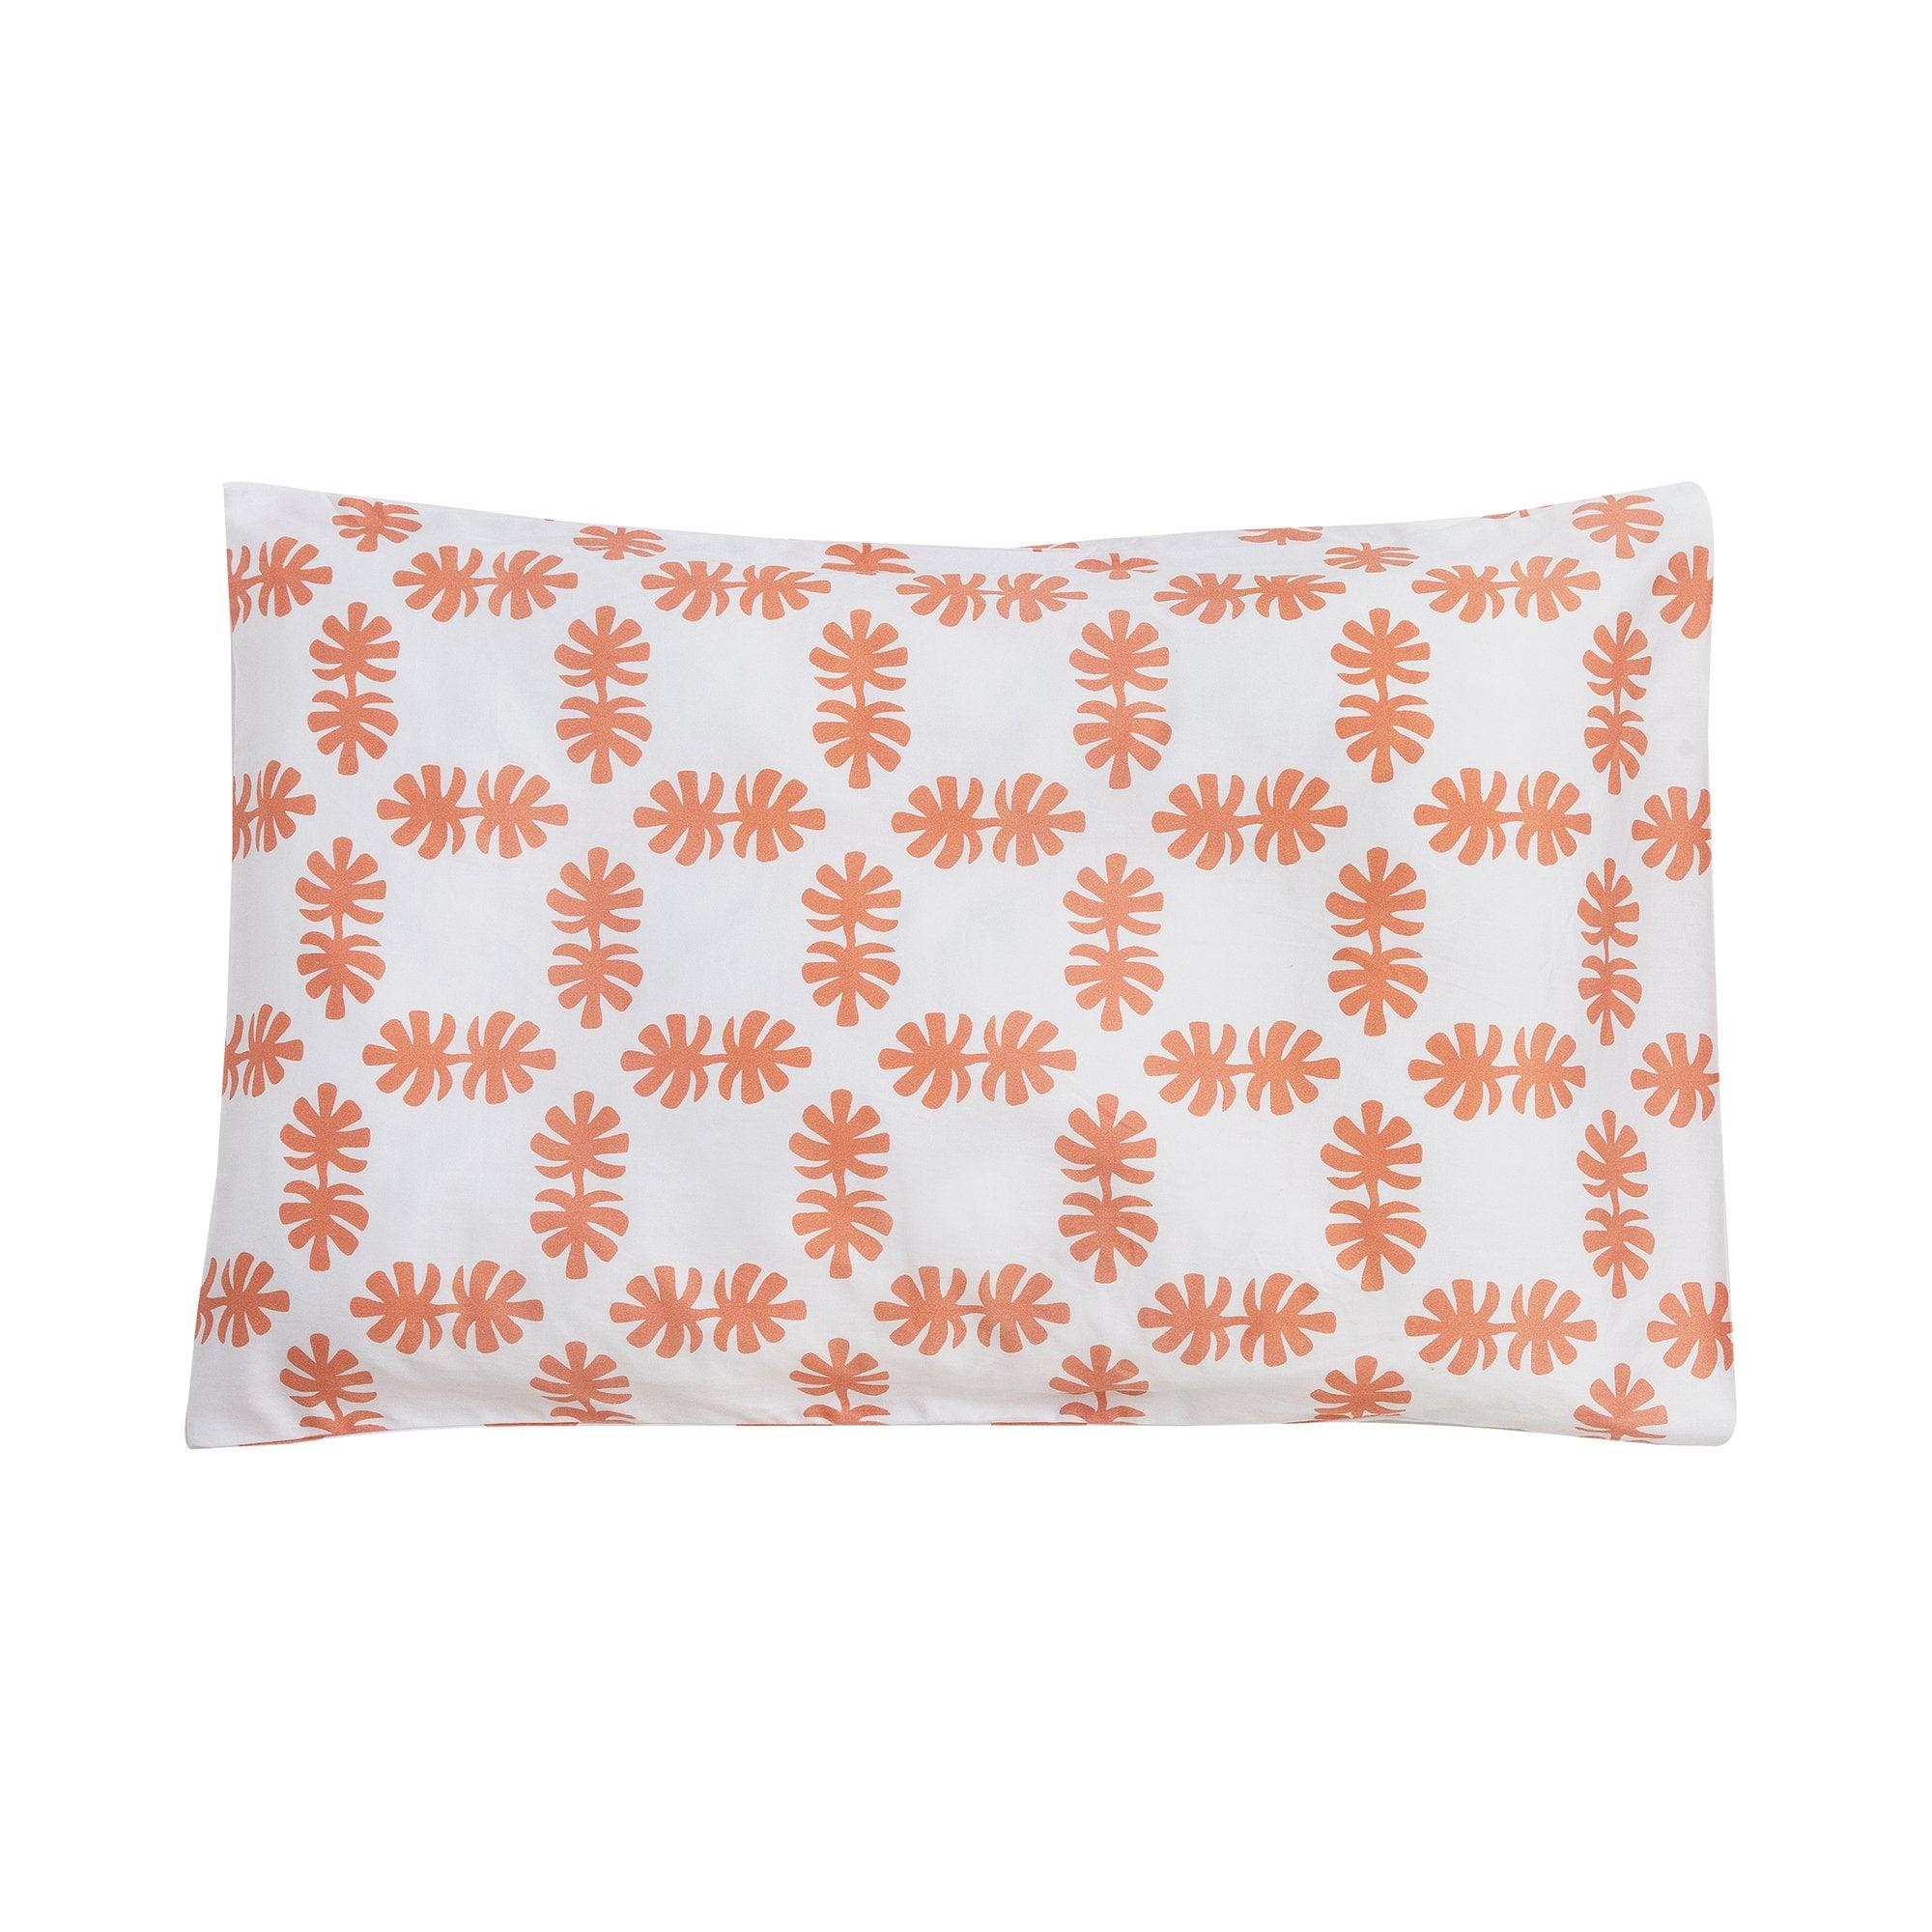 Kikau's Coral Orange Coco Palm kids pillowcase on white background